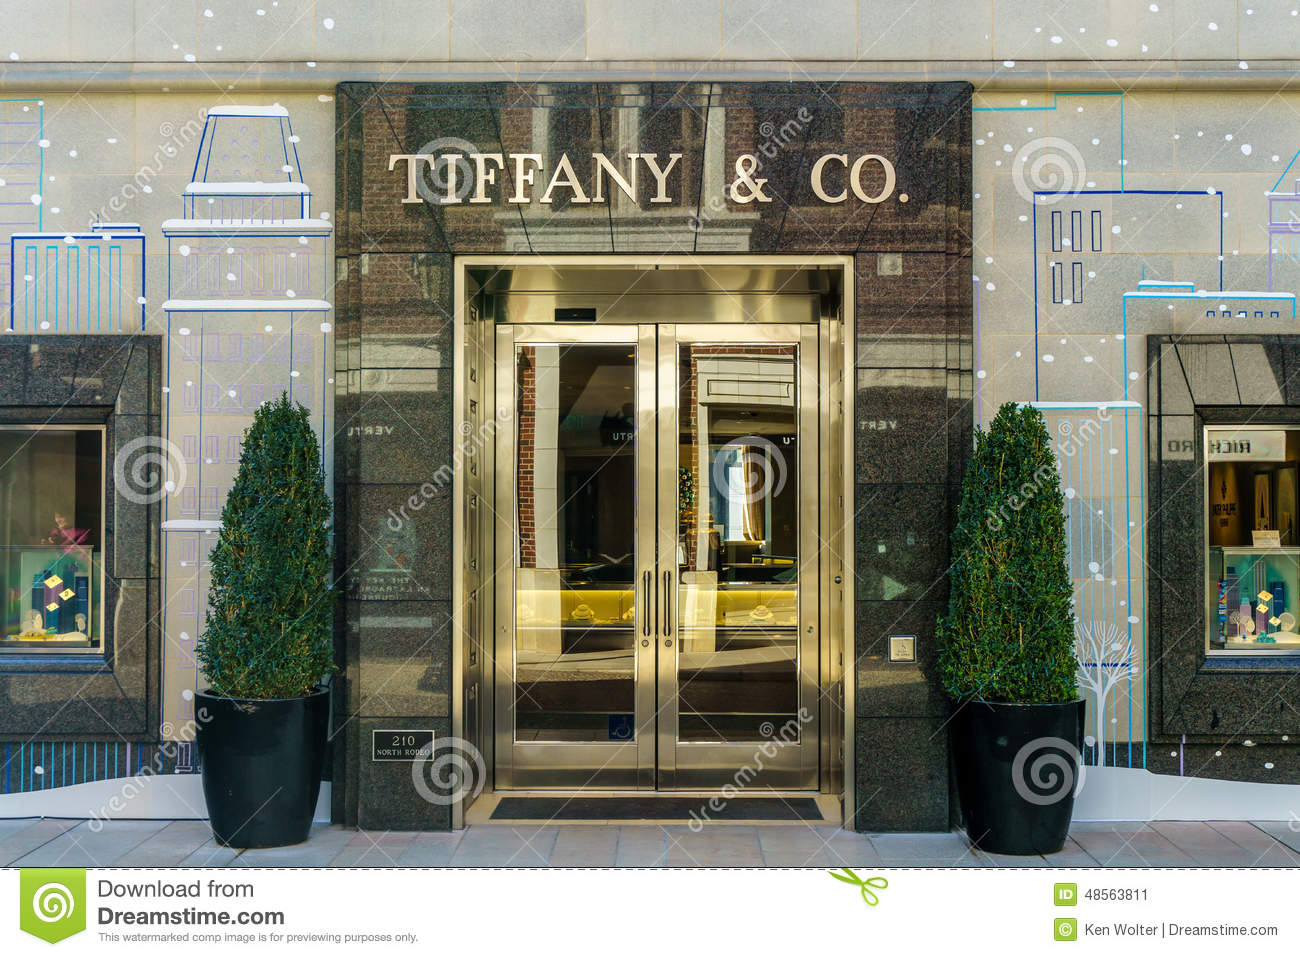 Tiffany company retail store exterior editorial photo for Retail shop exterior design